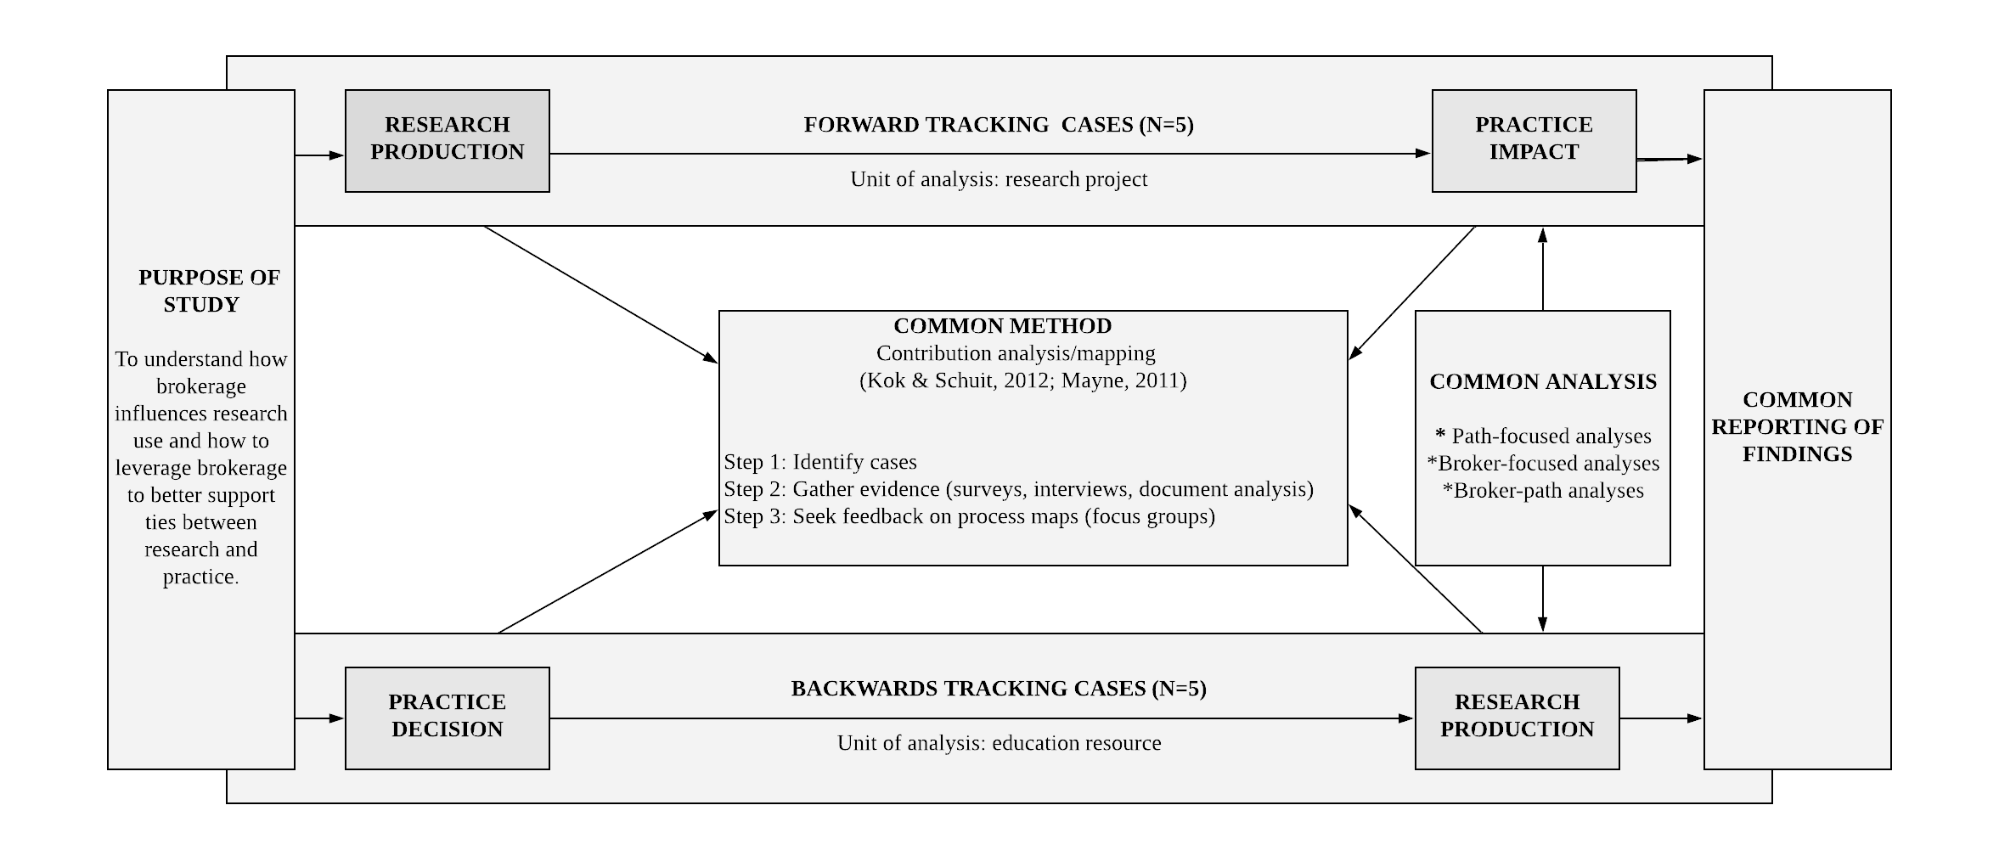 A flow chart depicting the relationship between forward and backward tracking cases